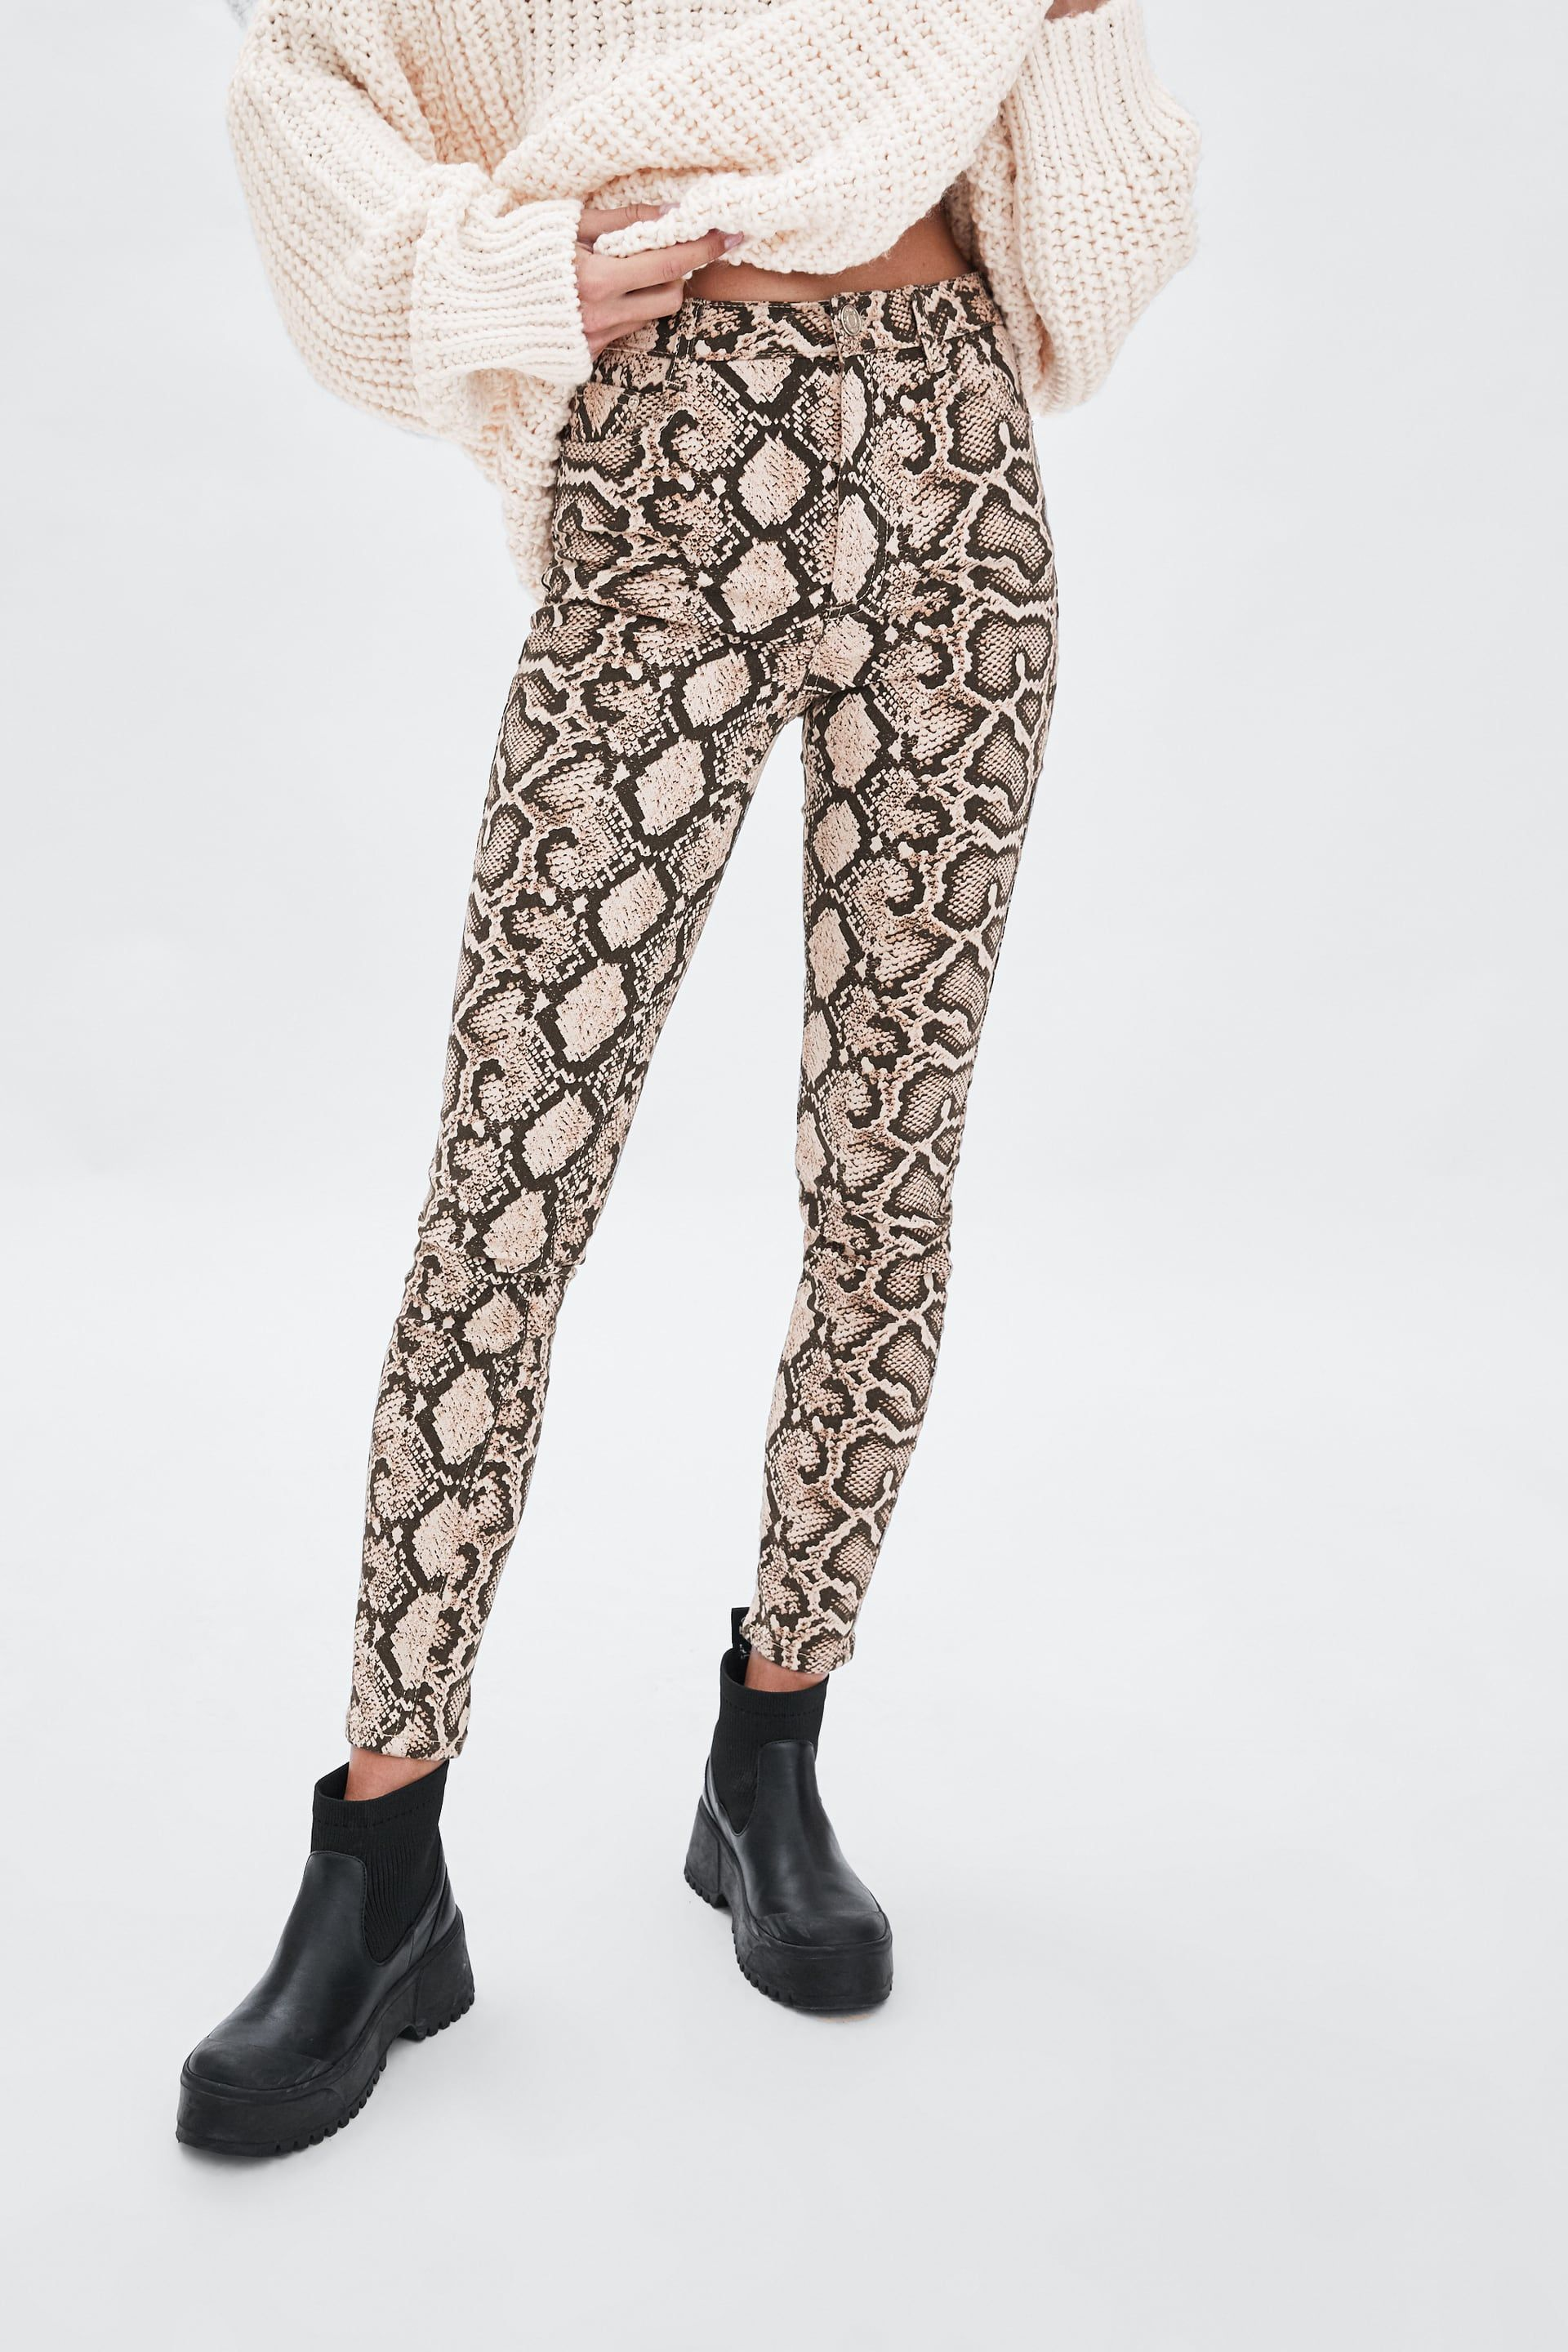 69fecfc56dfcc2 Skinny snakeskin print jeans in 2019 | style and fashion | Printed ...